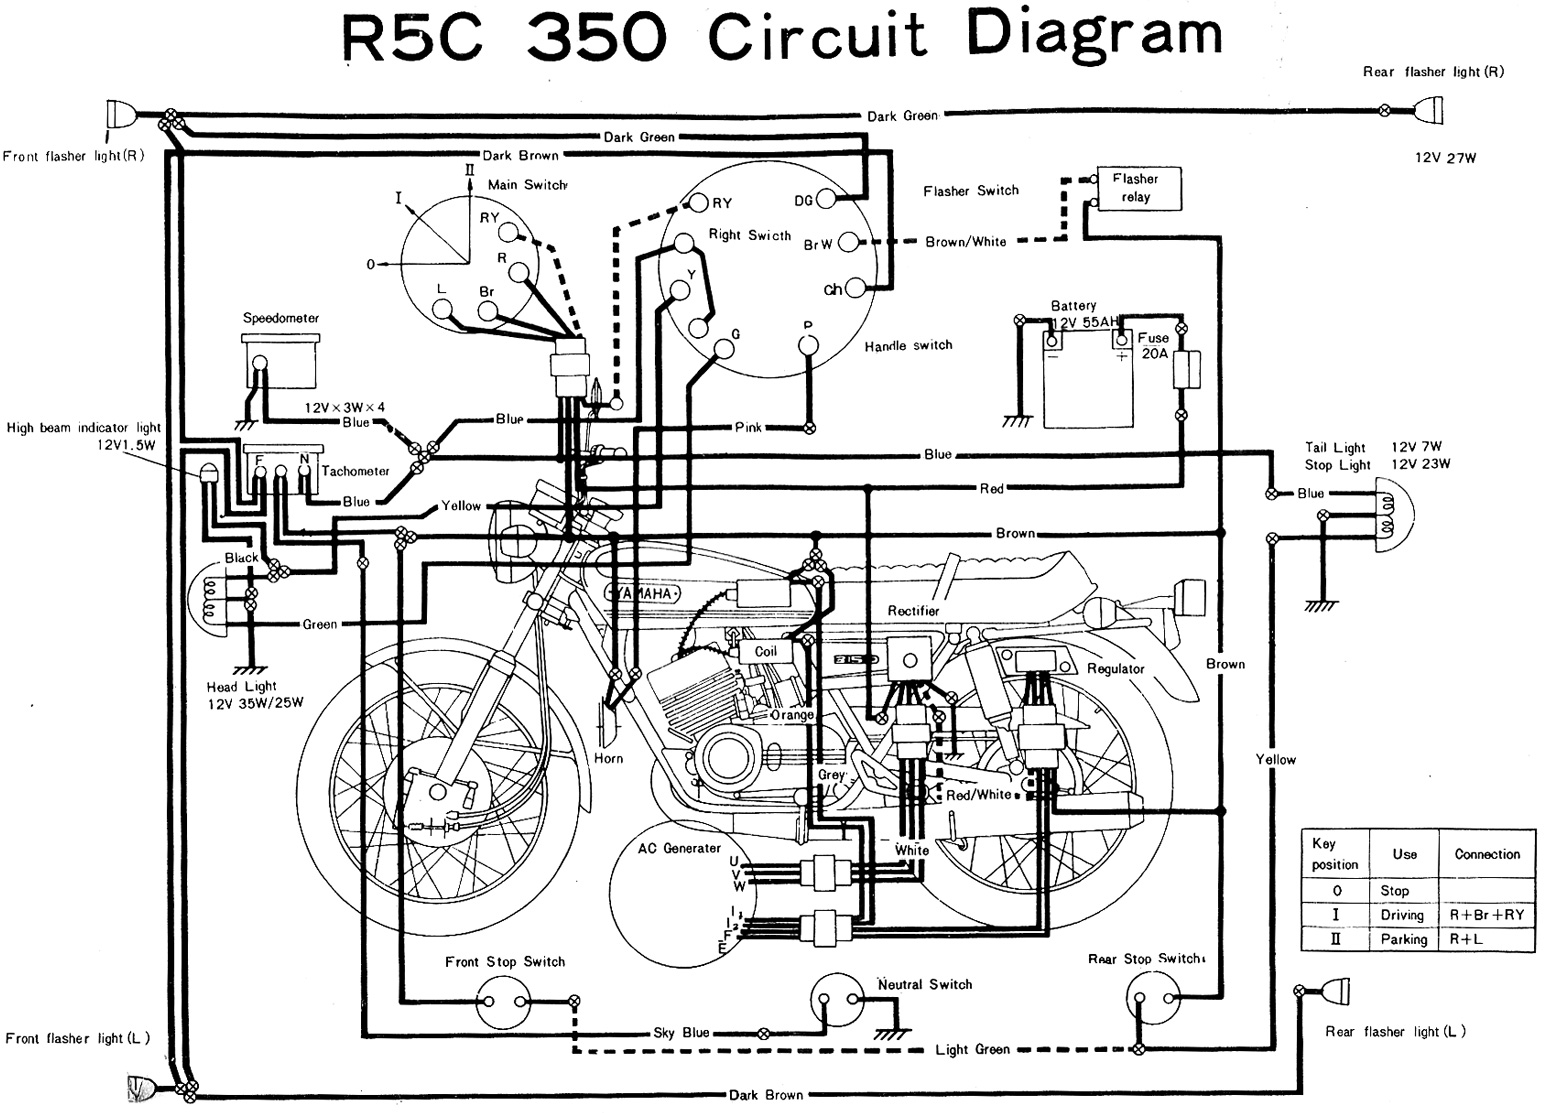 motorcycle harness diagram wiring diagram fileselectrical diagram motorcycle wiring diagram page simple motorcycle wiring harness diagram motorcycle harness diagram